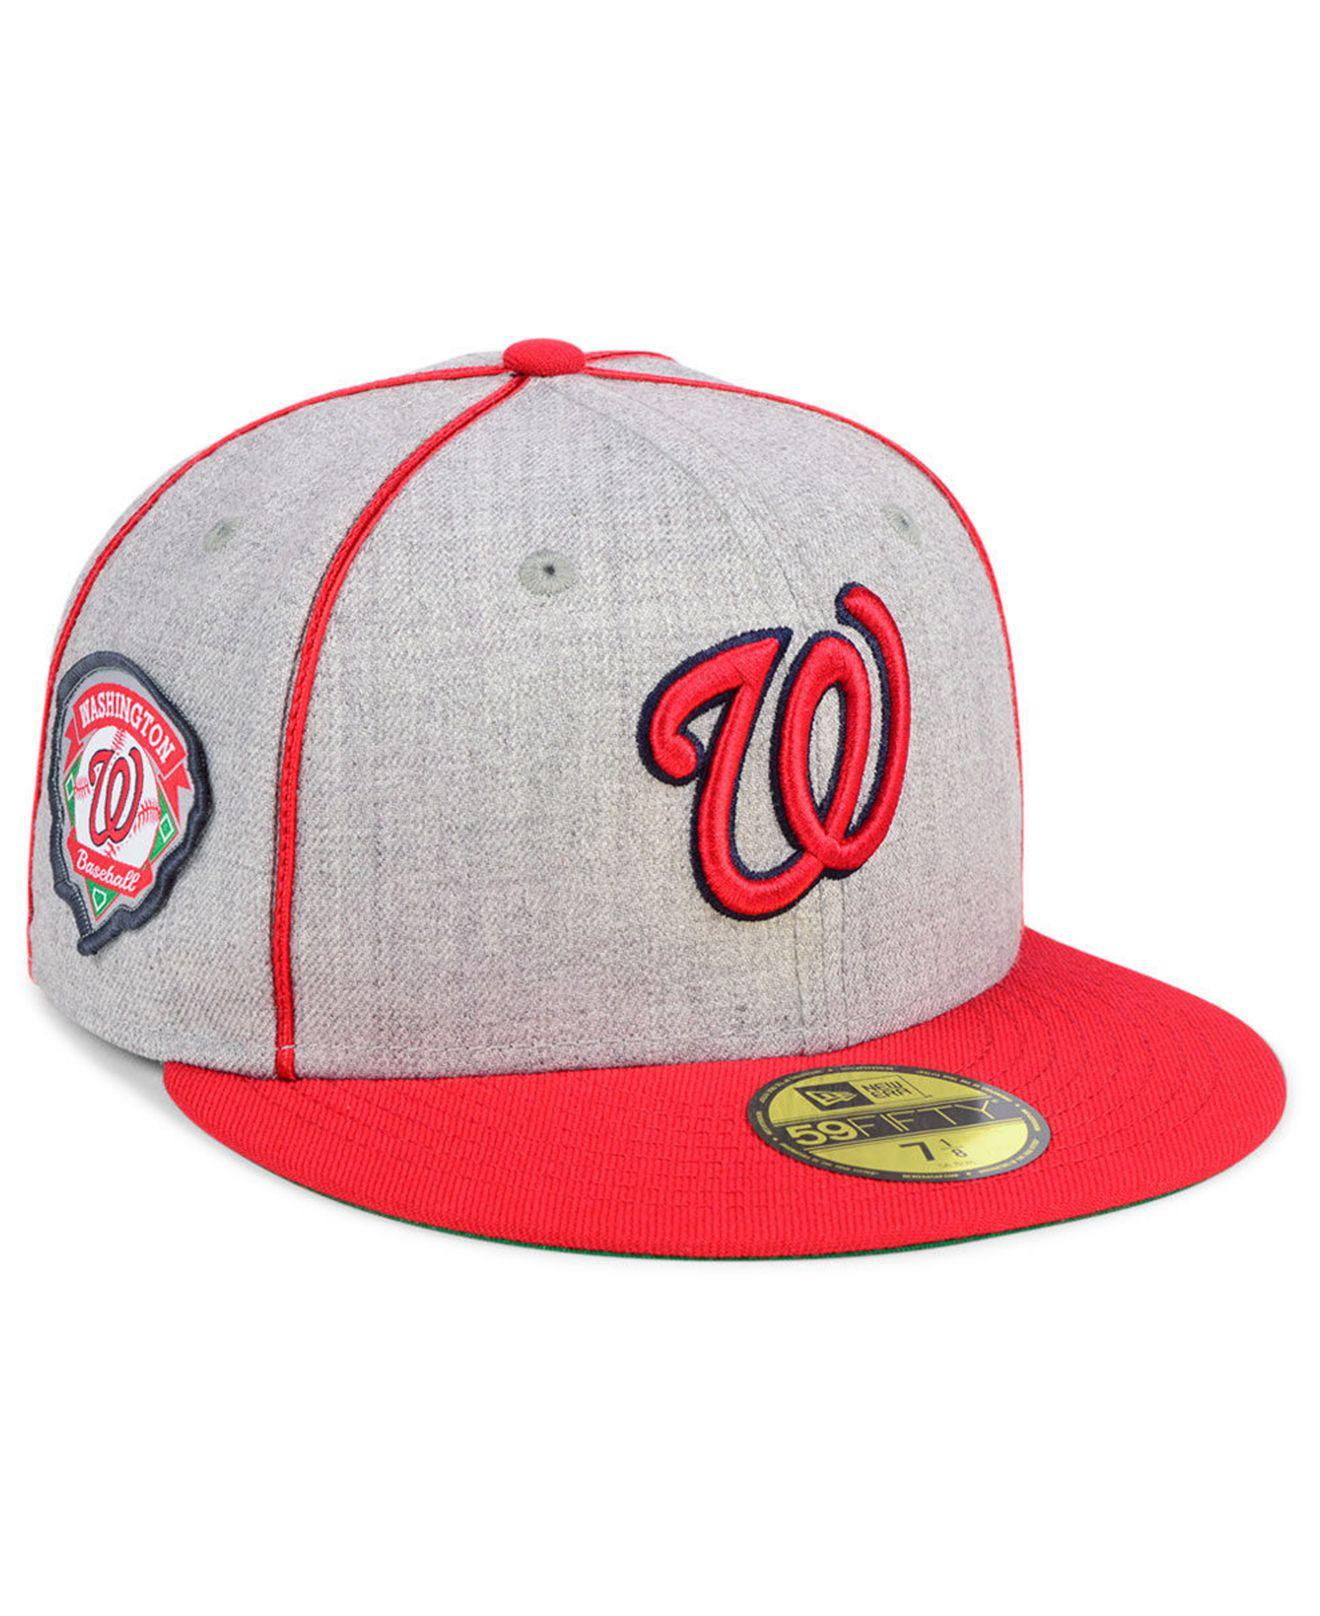 uk availability 3ab78 a99f2 KTZ. Men s Red Washington Nationals Stache 59fifty Fitted Cap